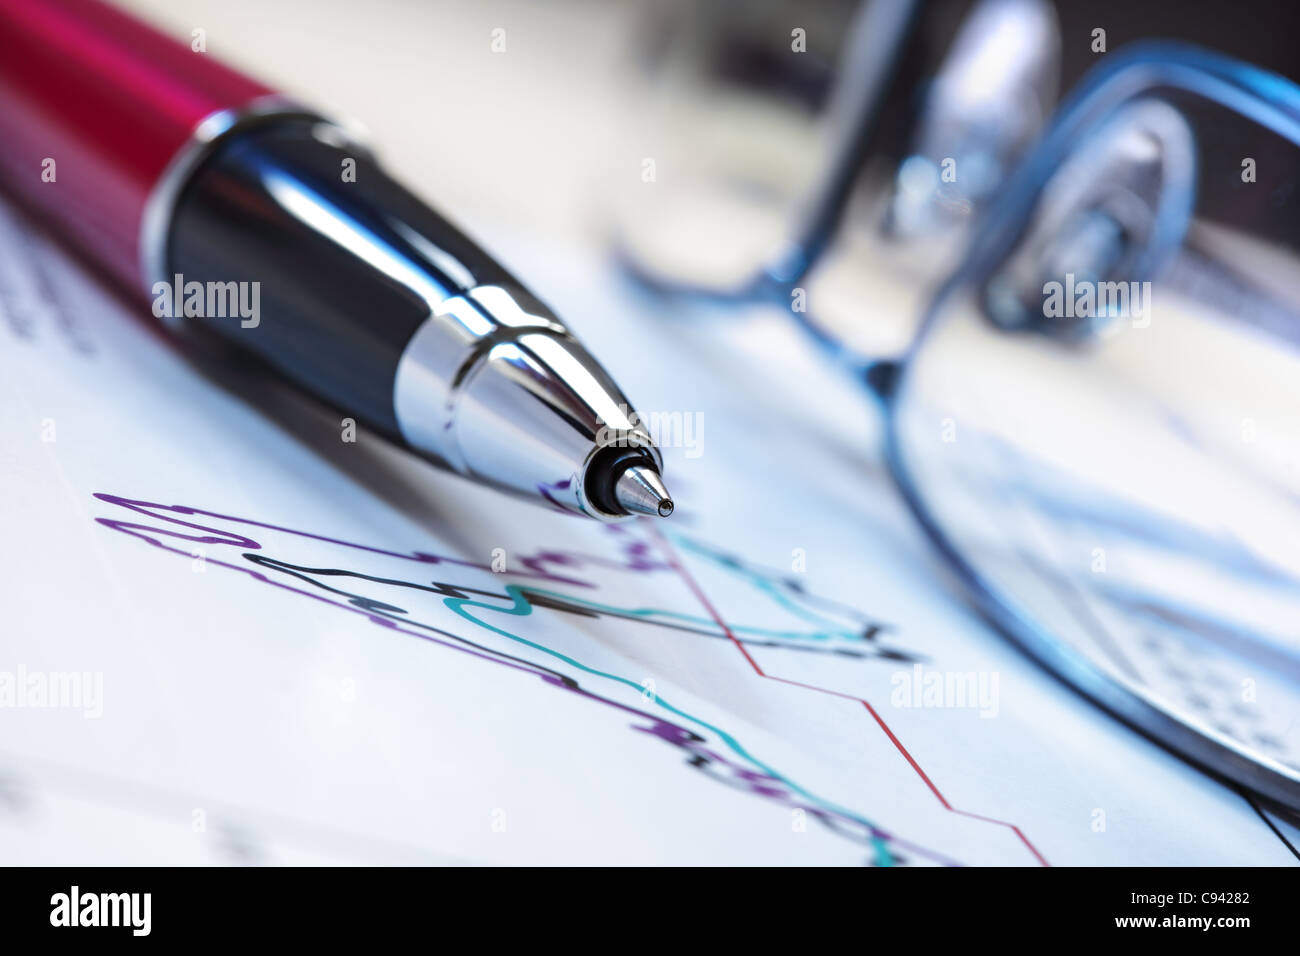 Pen and stock charts - Stock Image